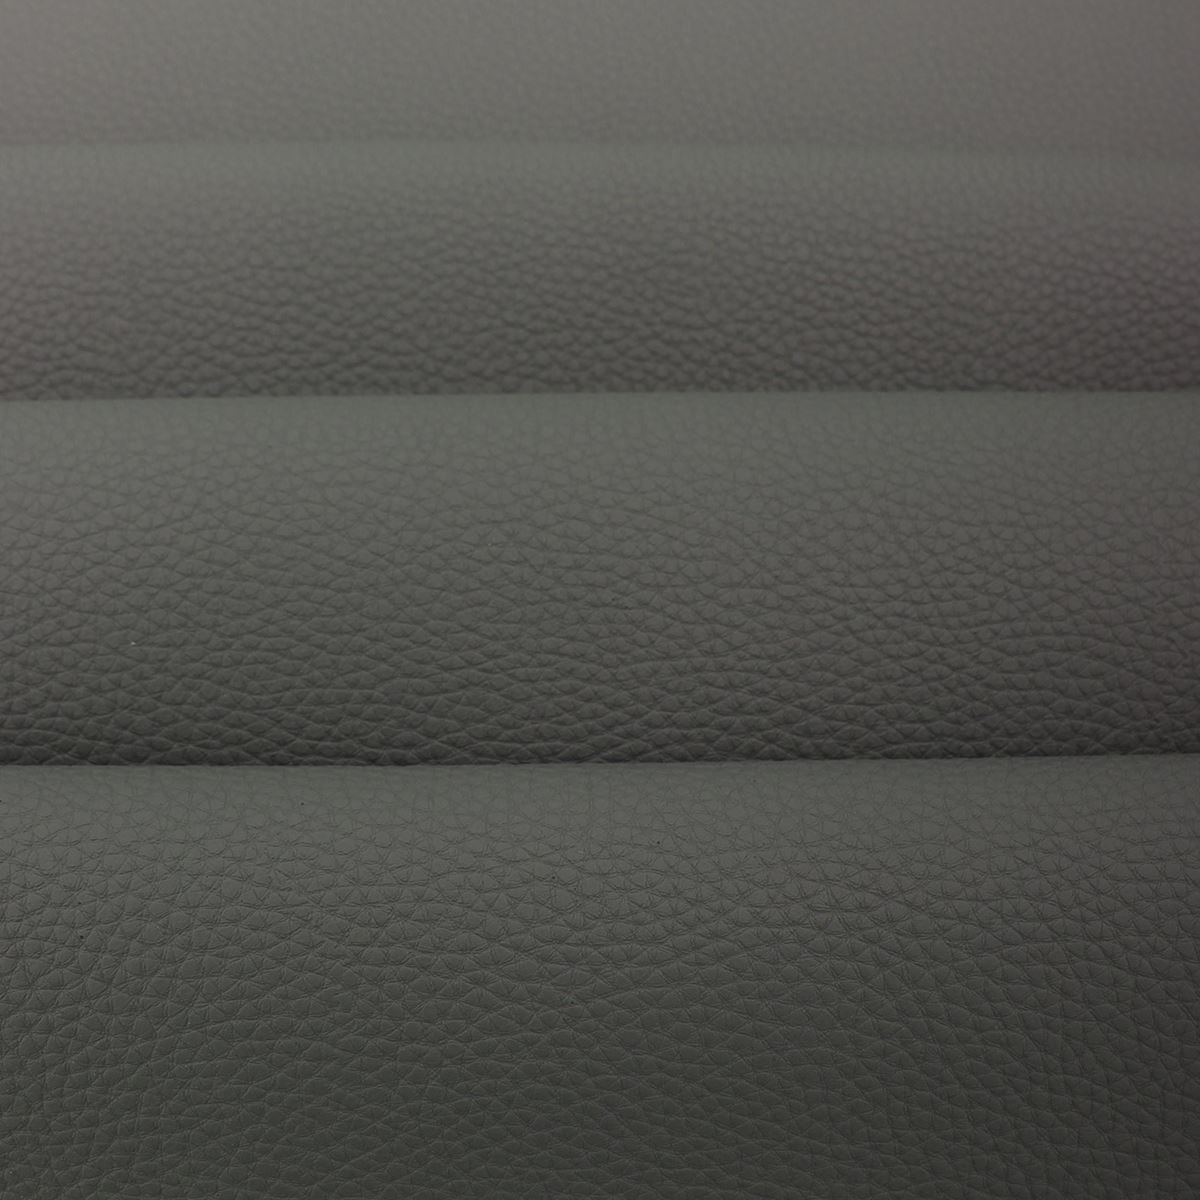 Nova-Faux-Leatherette-Artificial-Leather-Heavy-Grain-Upholstery-Vehicle-Fabric thumbnail 35